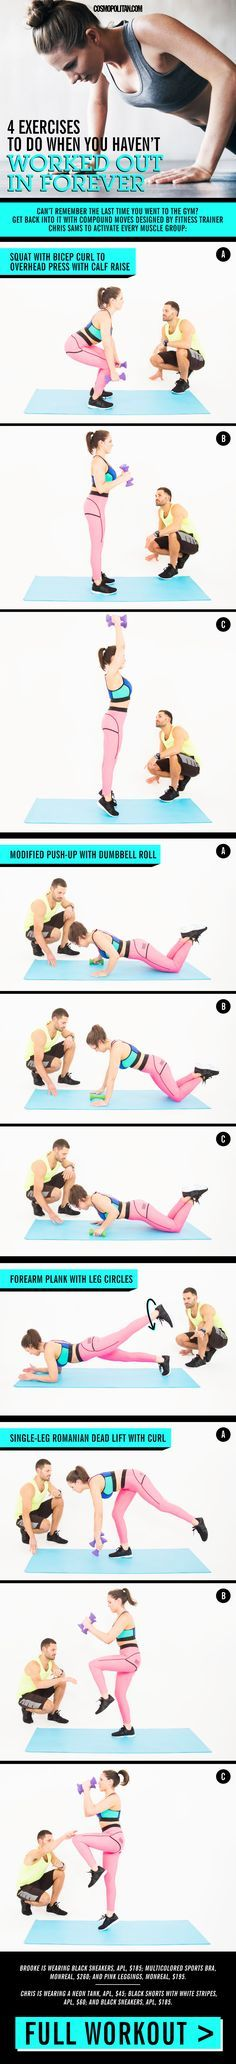 4 Exercises to Do When You Haven't Worked Out in Forever